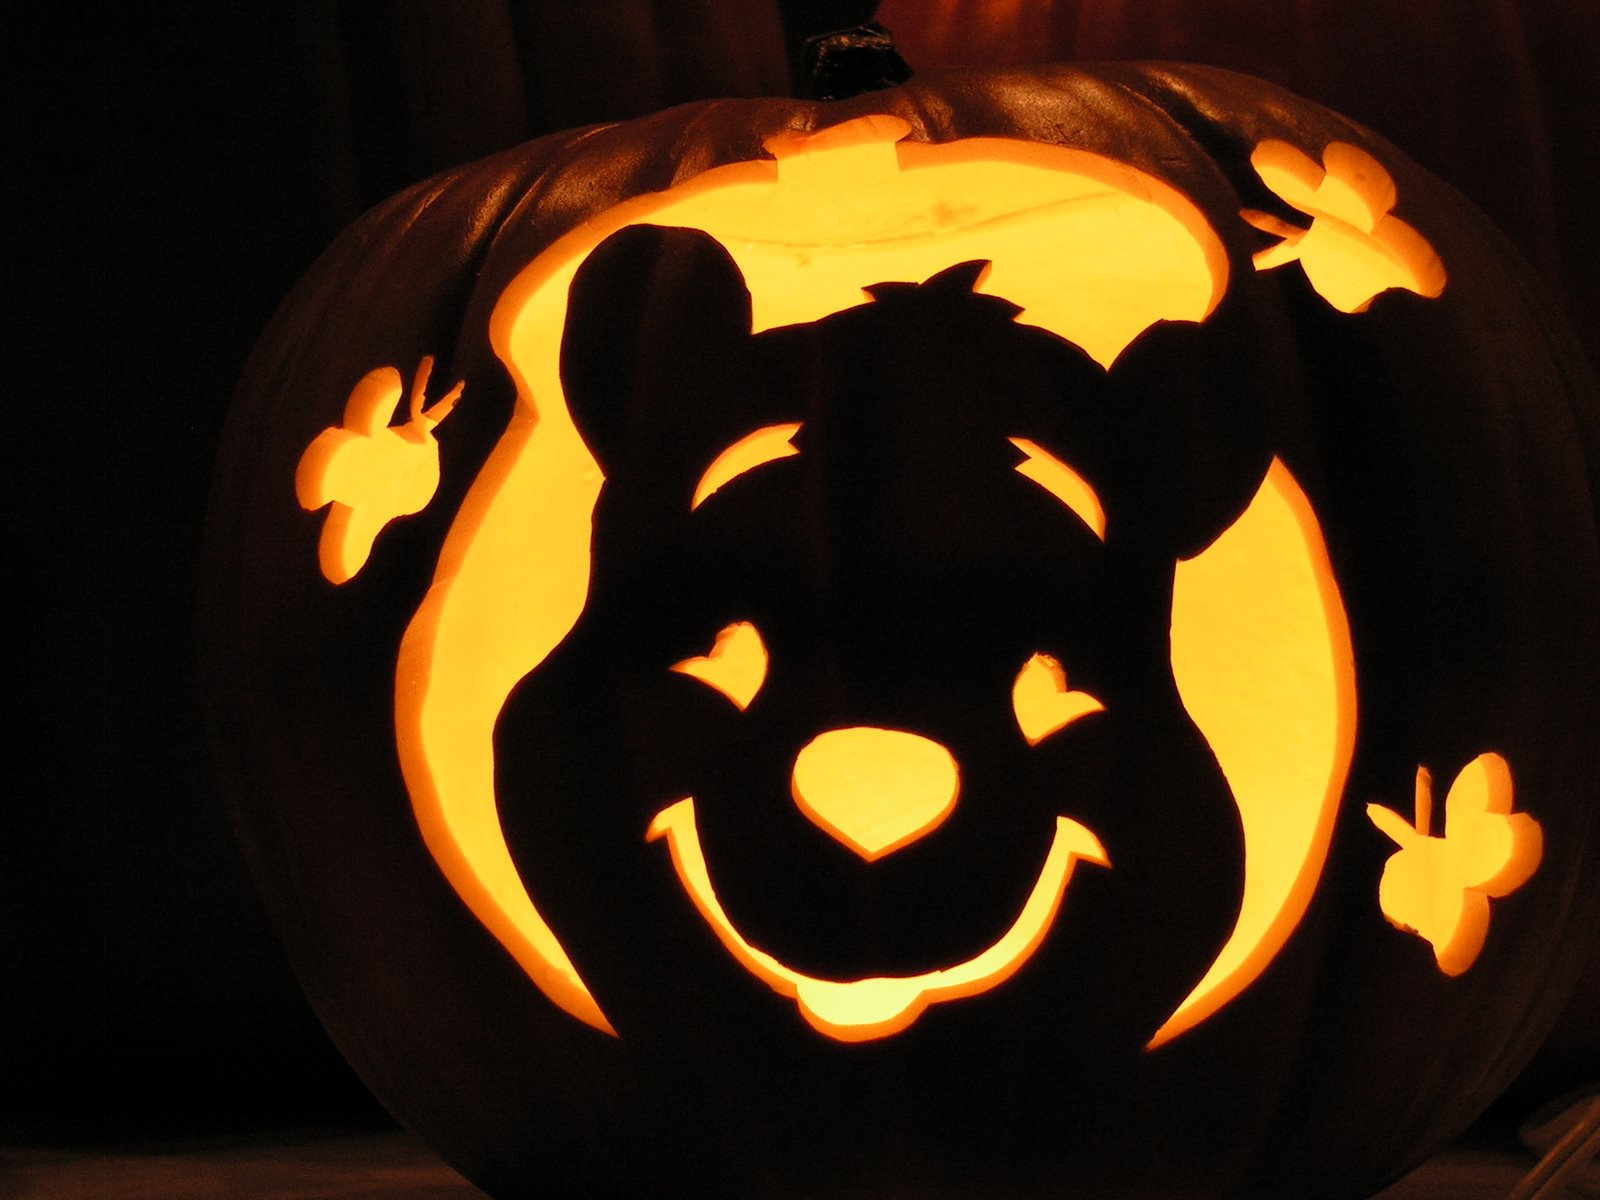 Amazing Wallpaper Halloween Winnie The Pooh - winnie-the-pooh-halloween-wallpaper-19934-20439-hd-wallpapers  Collection_911348.jpg